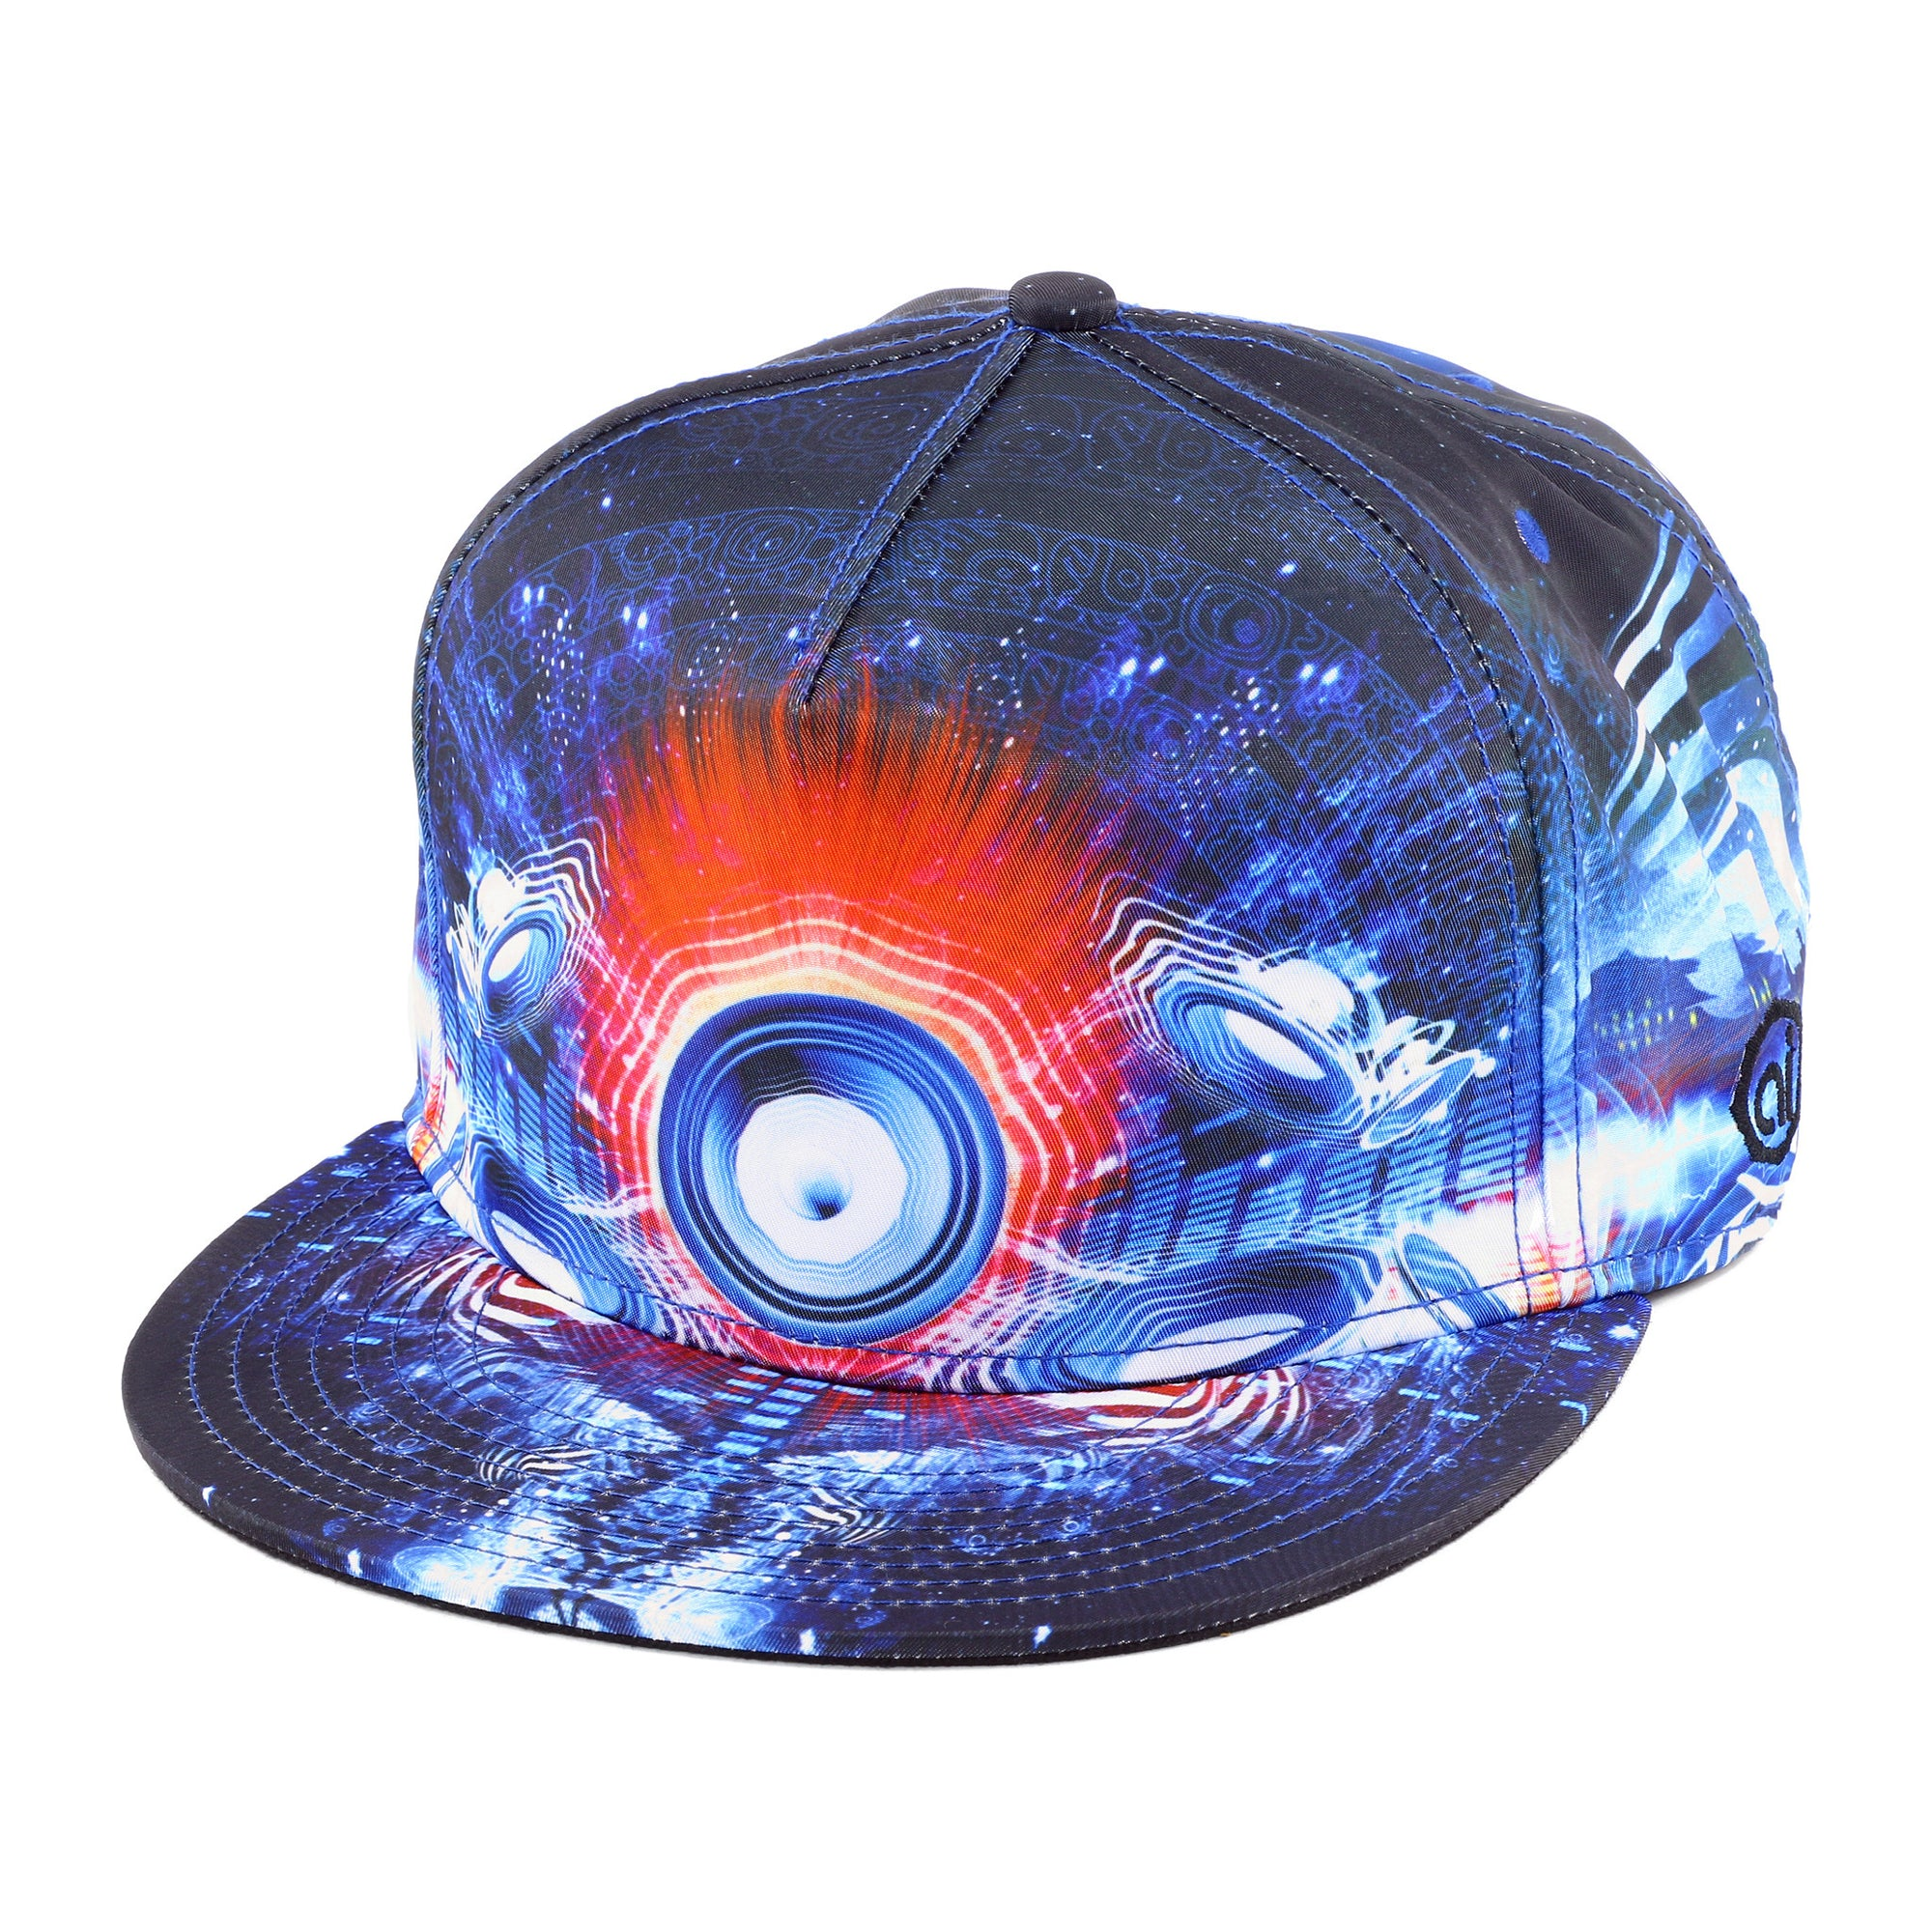 Trill Frequency Fitted Headwear - Alternative Intelligence - aiapparel